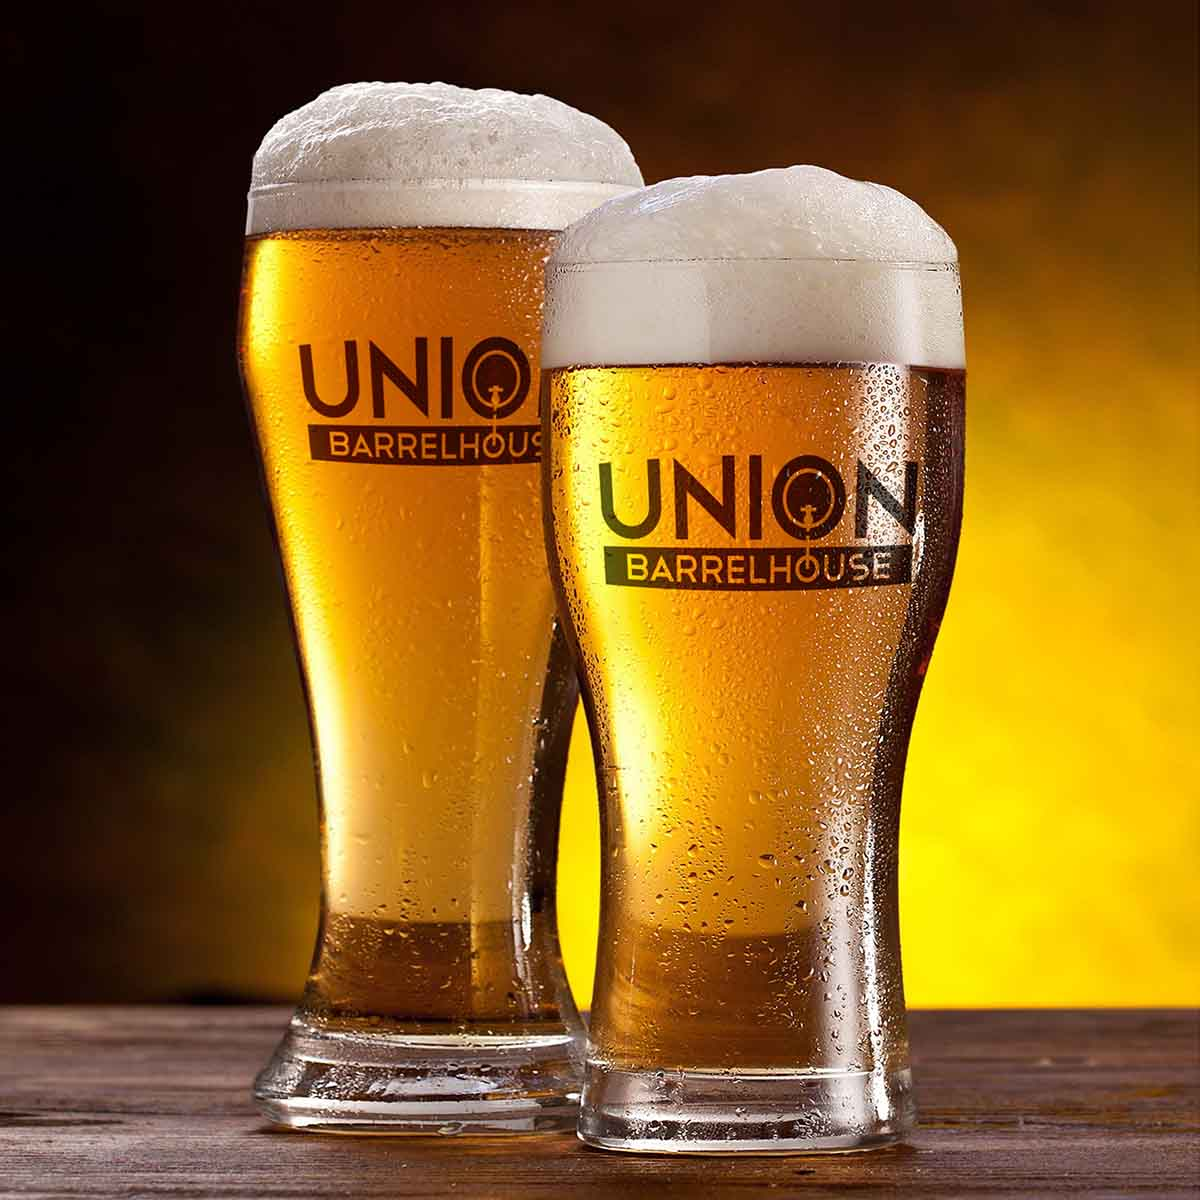 union BARRELHOUSE